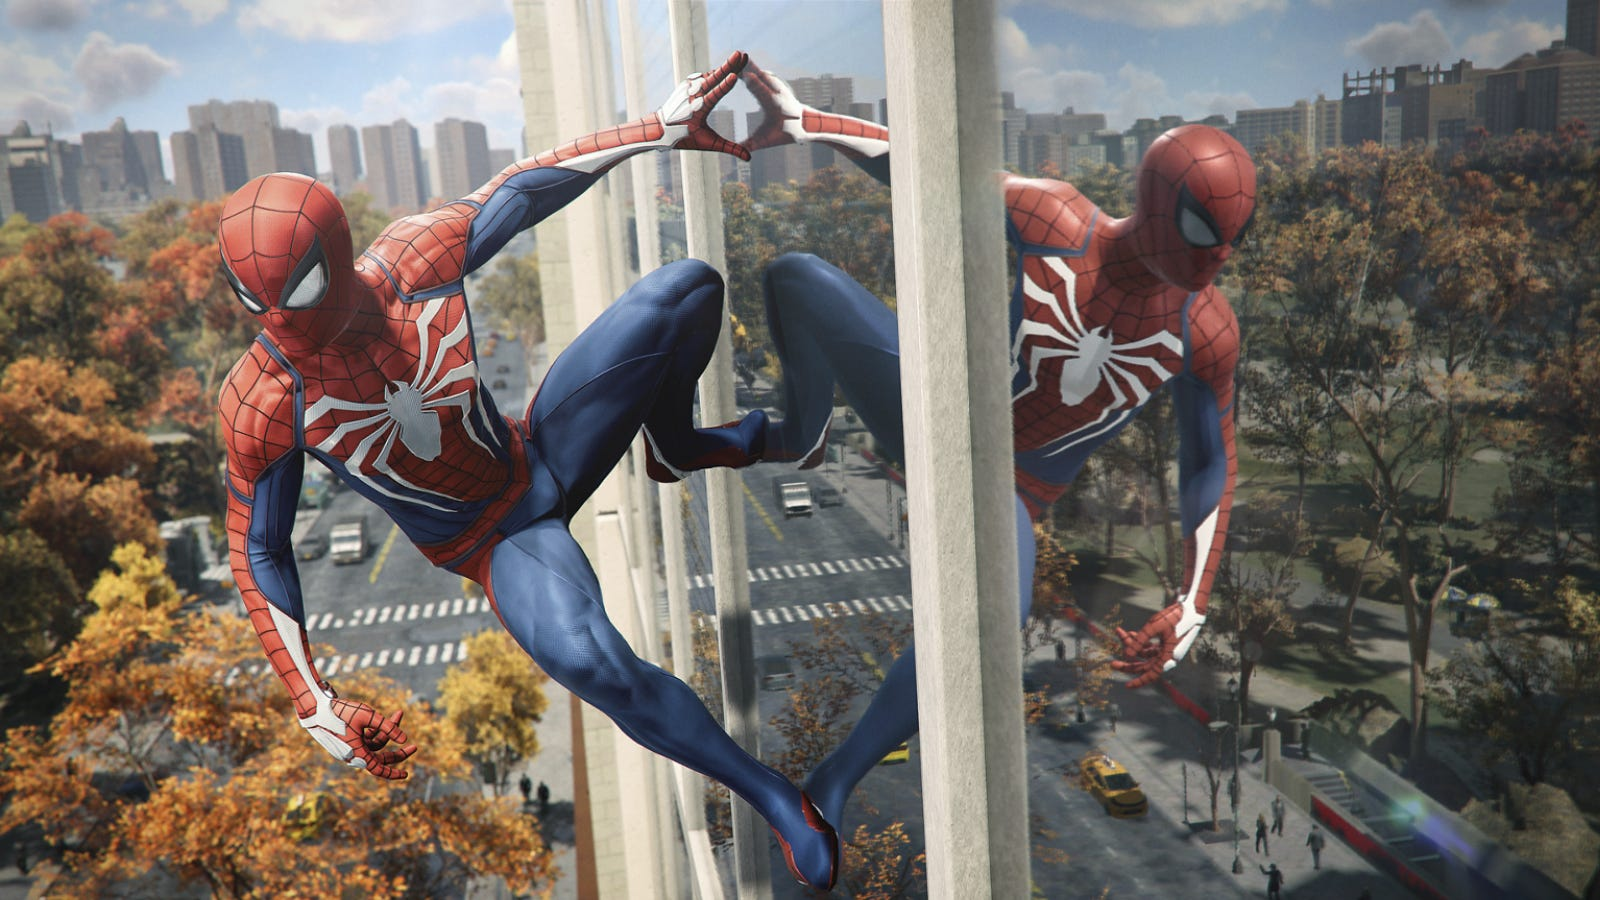 Spider-Man hanging onto a glass wall in 'Marvel's Spider-Man Remastered'